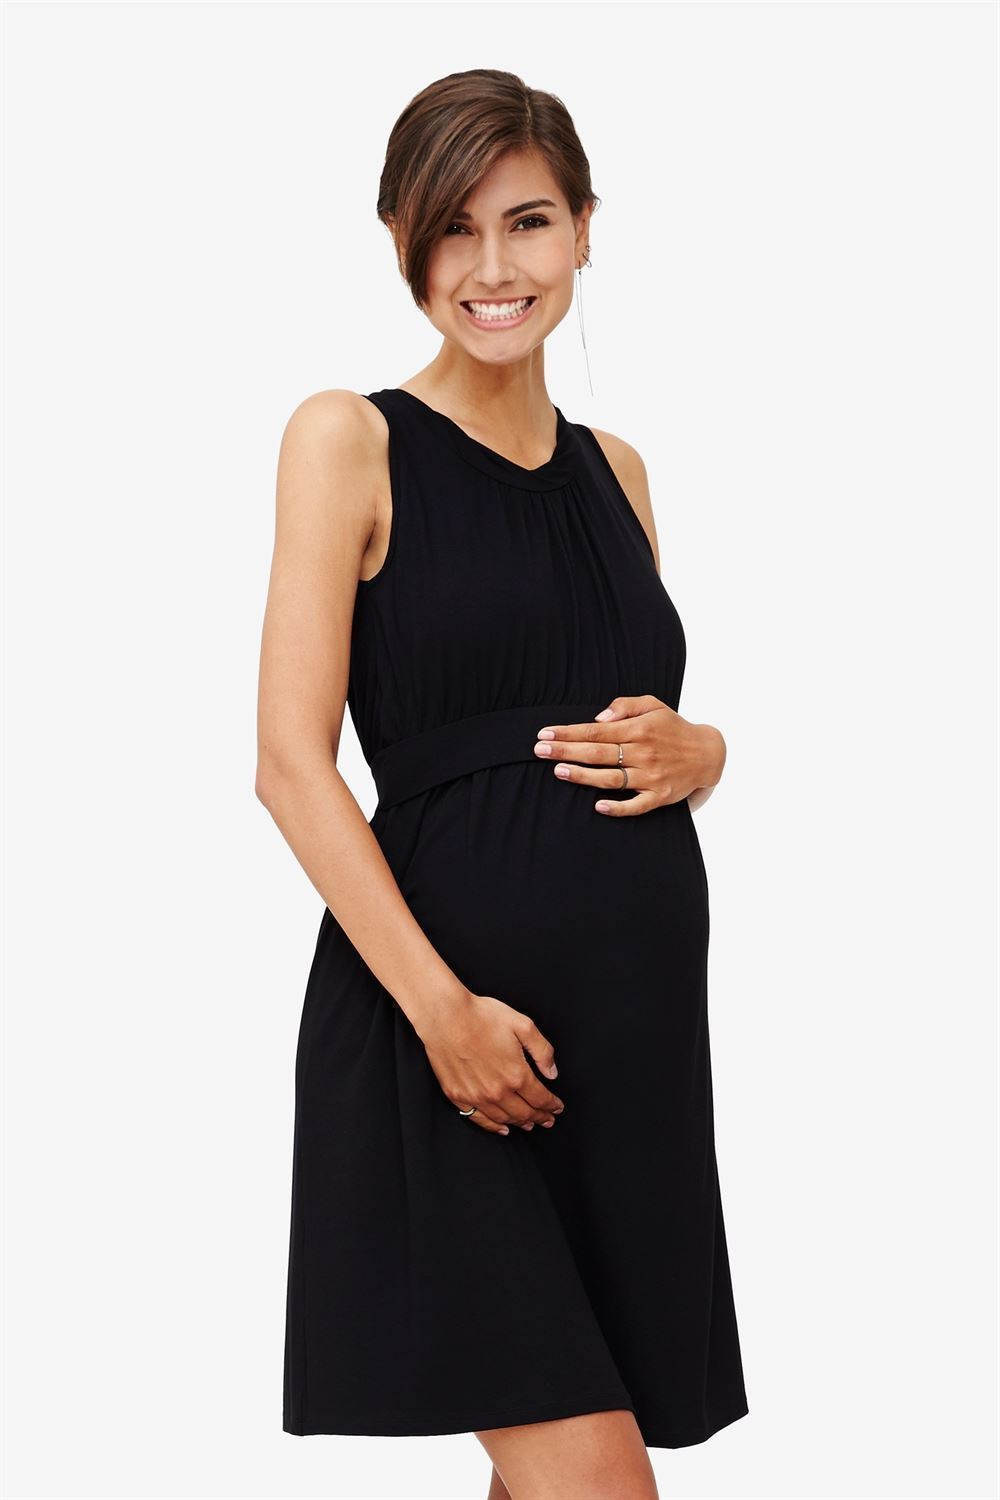 Black sleeveless nursing dress – knee-length in bamboo fibers - with baby bump